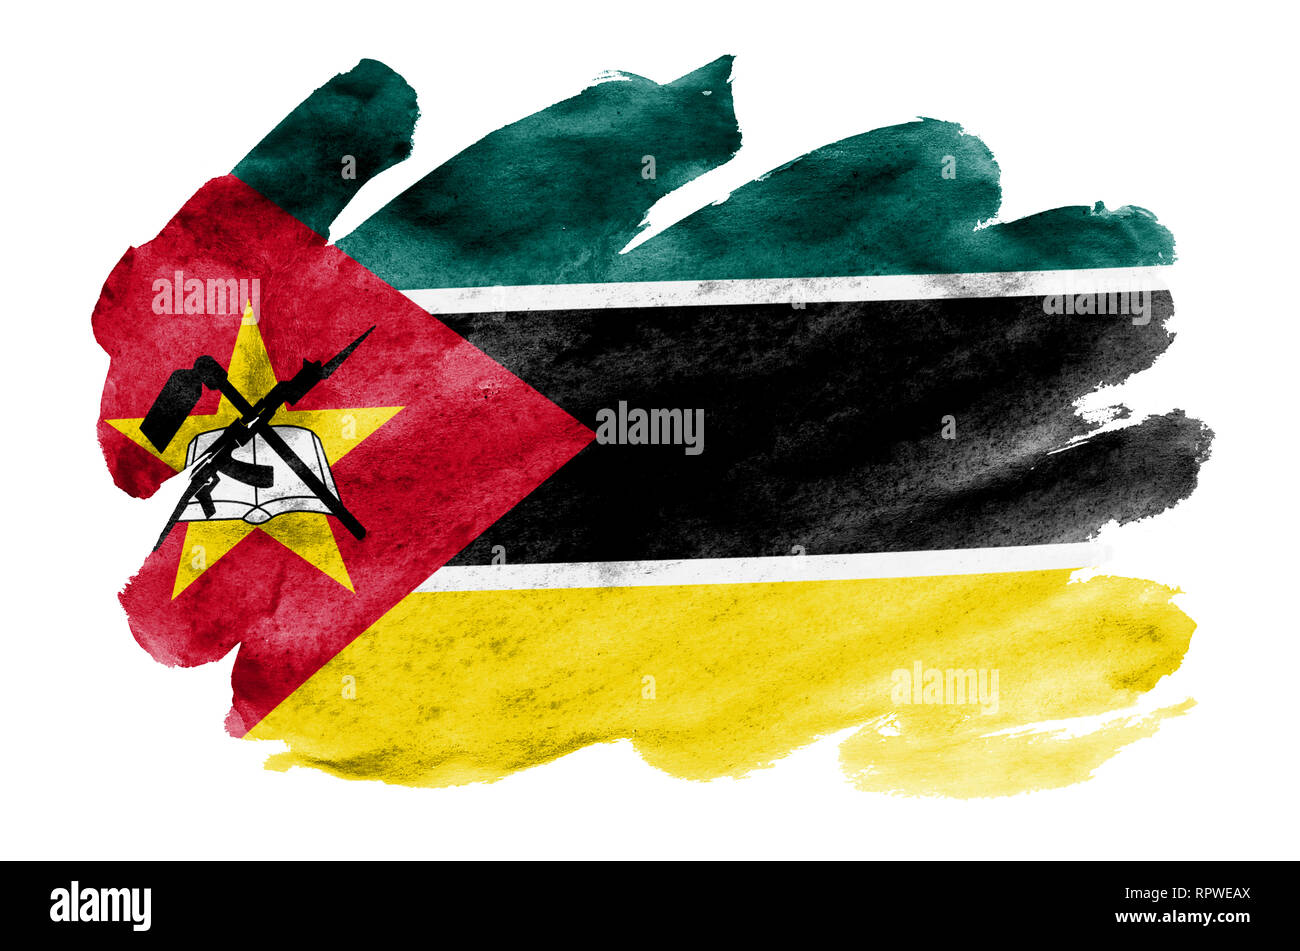 Mozambique flag is depicted in liquid watercolor style